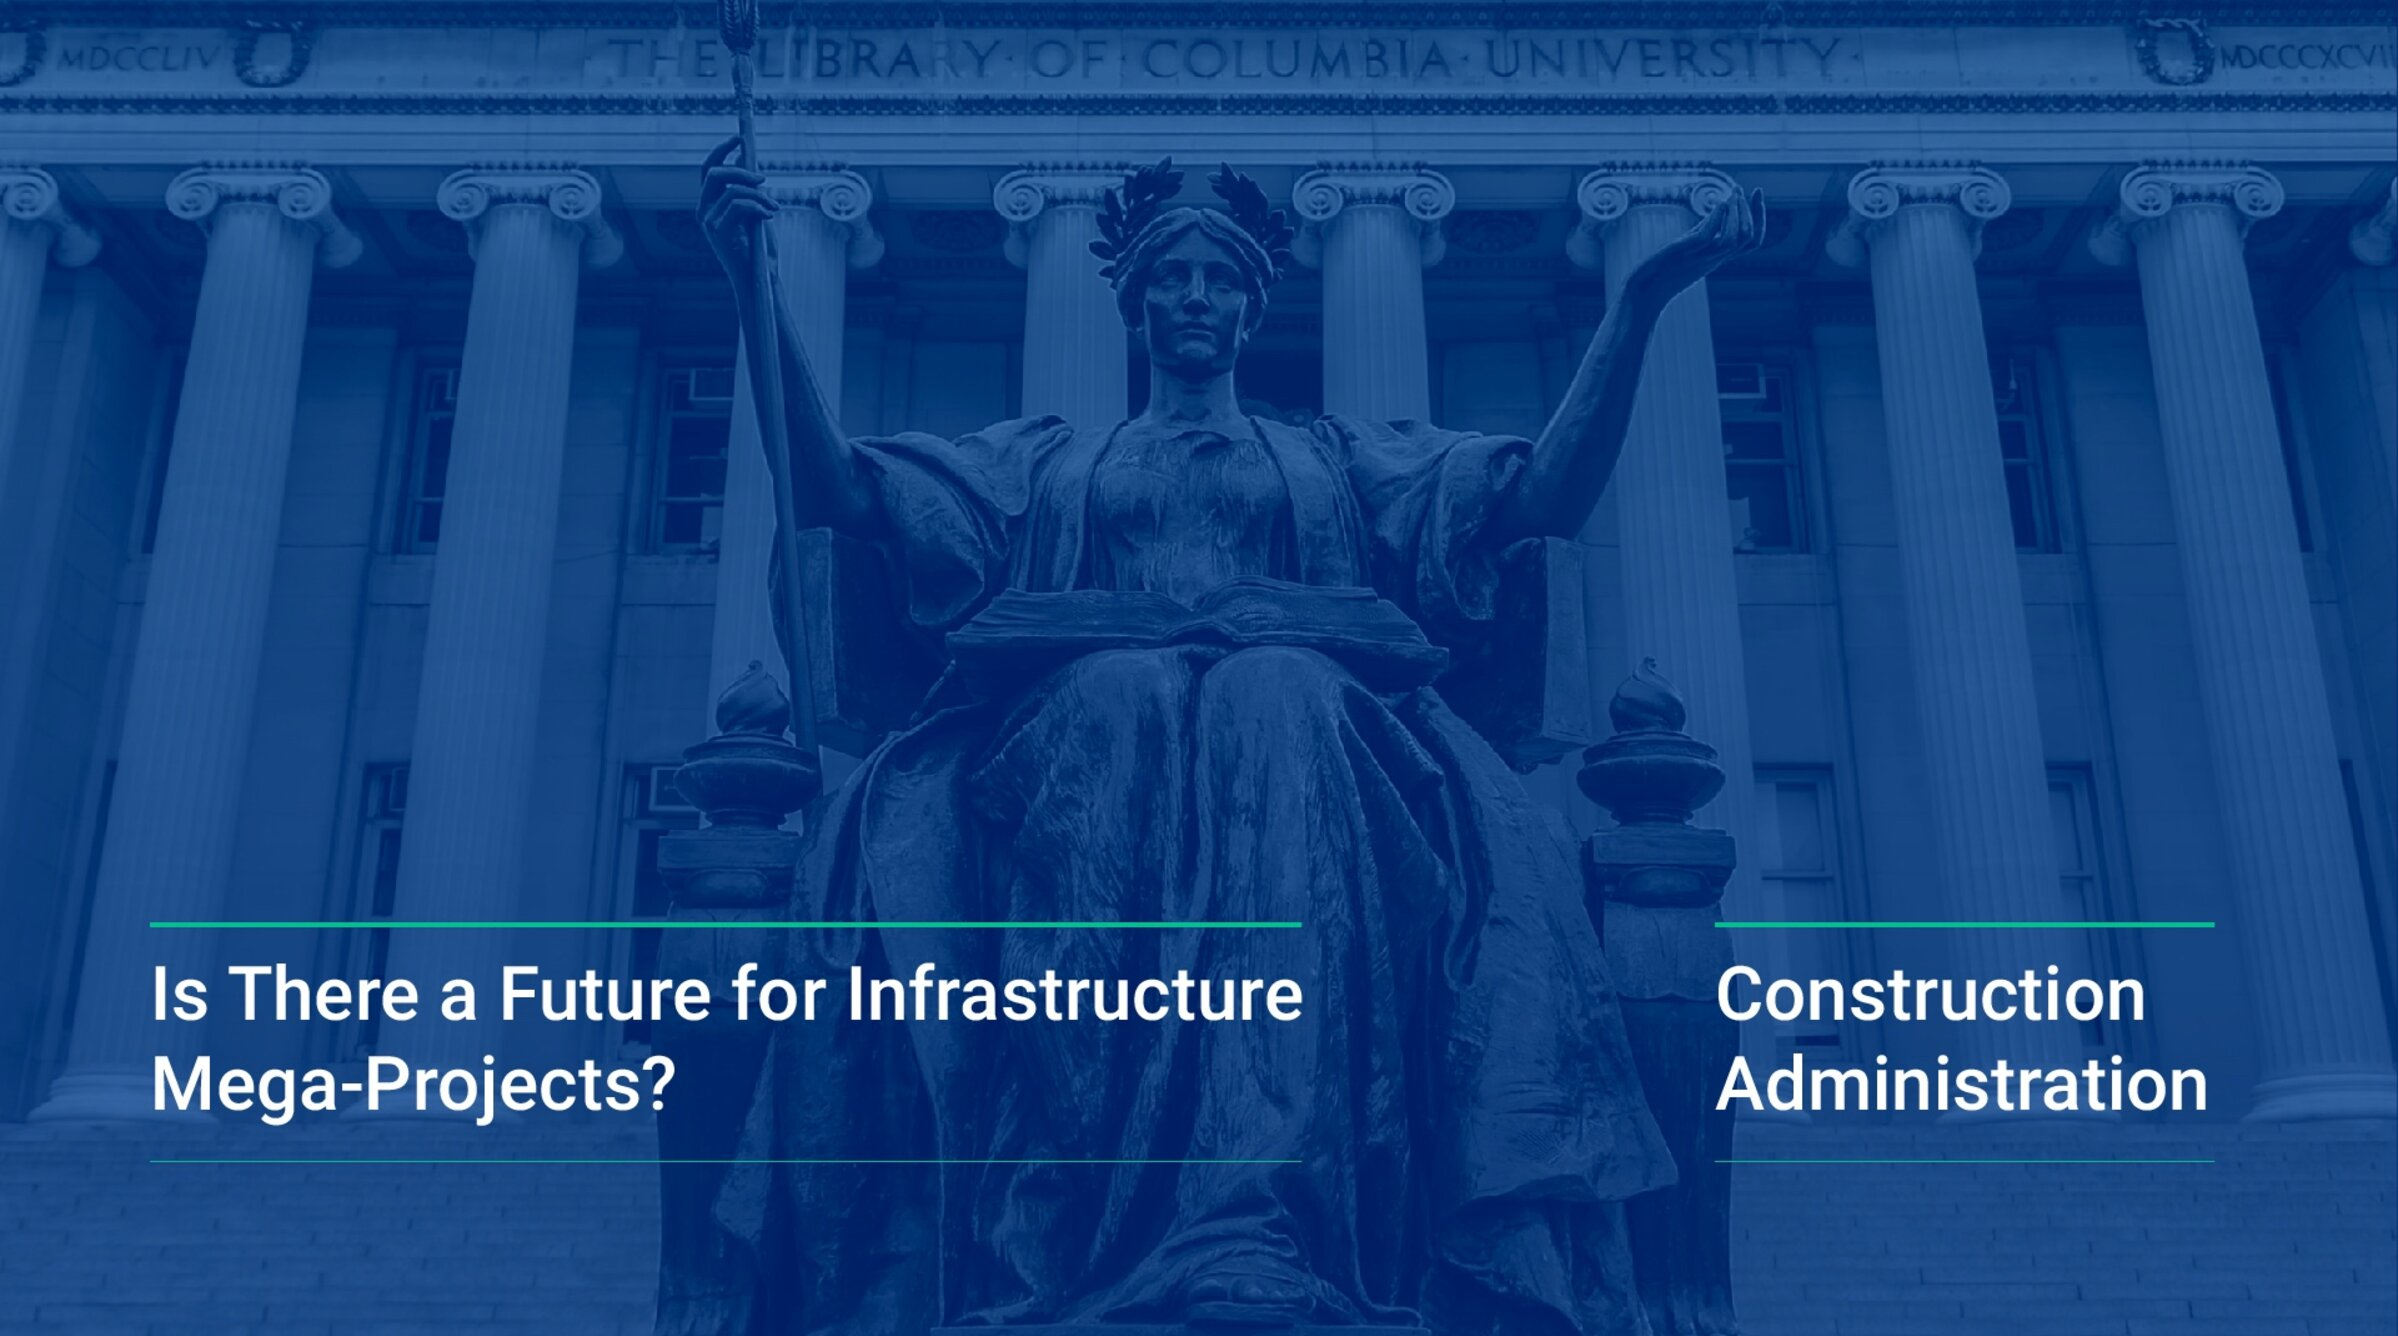 Is There a Future for Infrastructure Mega-Projects?